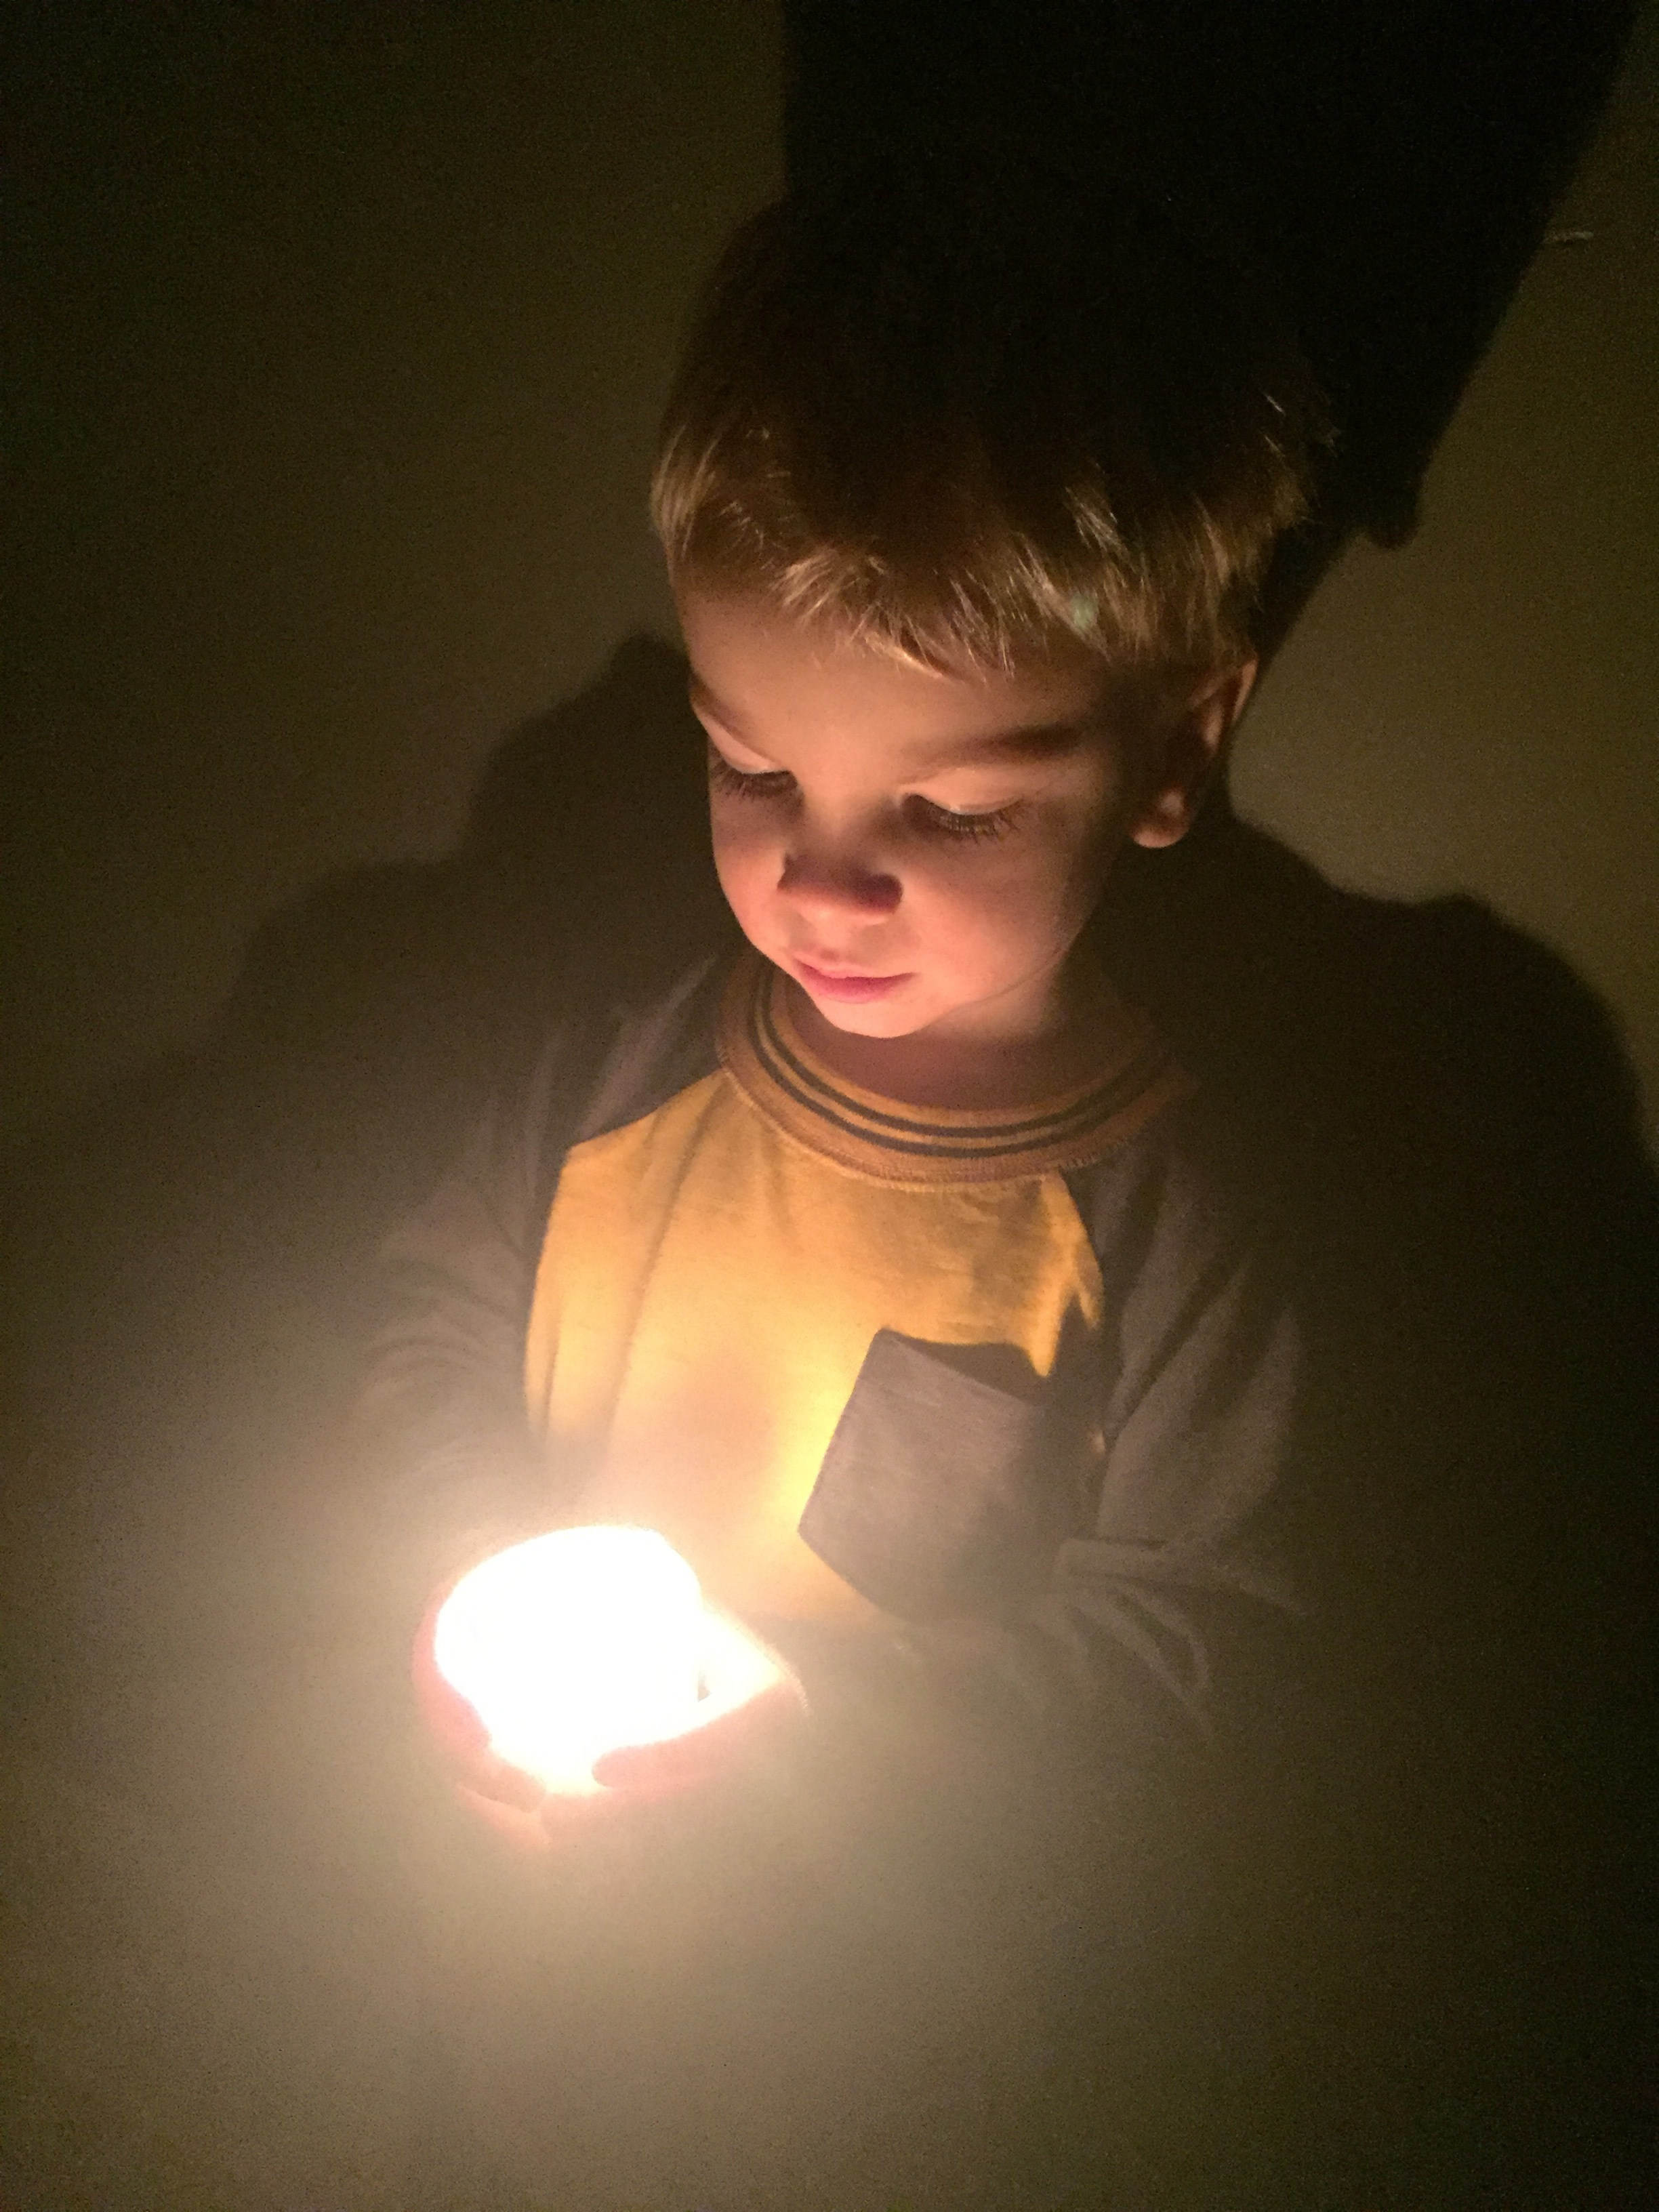 My son Lukas - Feeling the light.